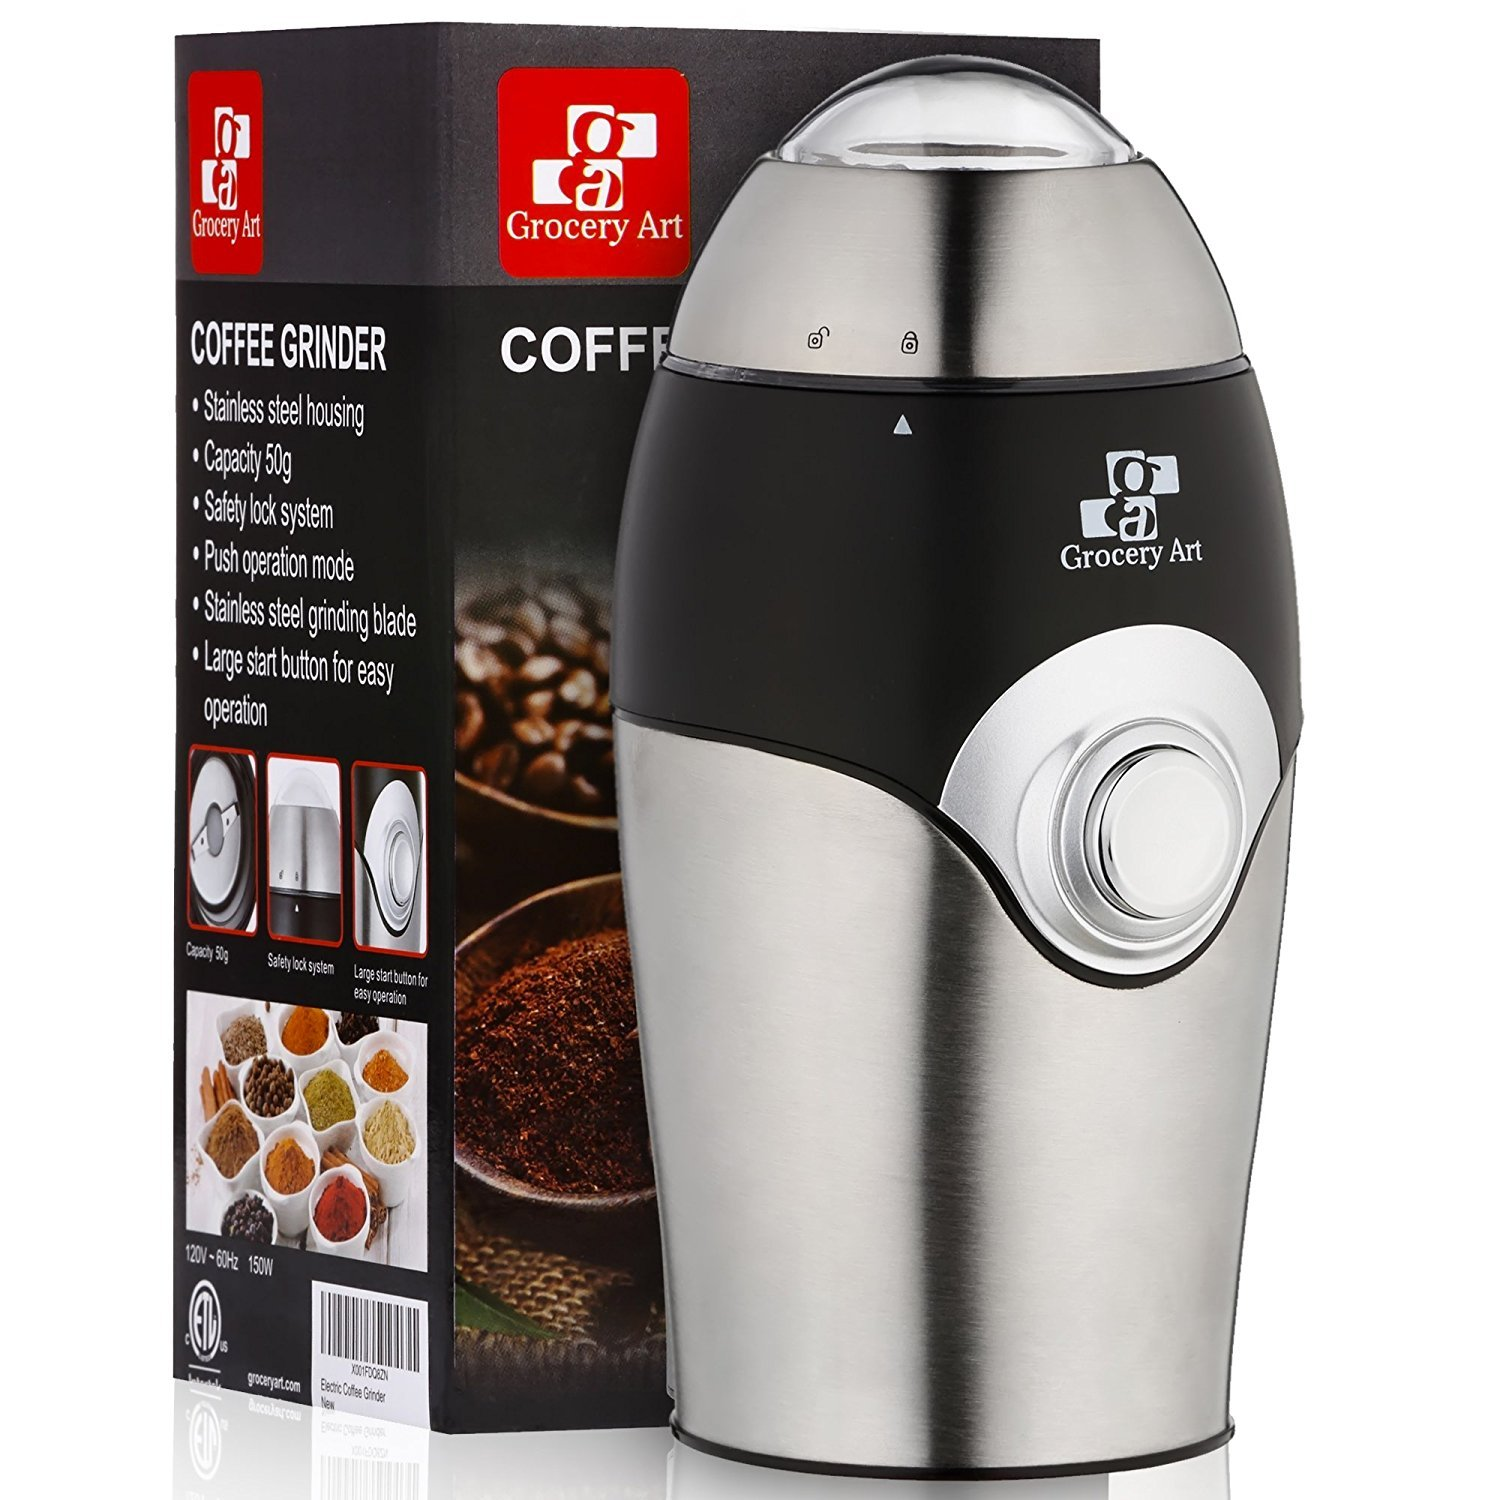 Electric Coffee Grinder Blade Mill - Small & Compact Simple Touch Automatic Grinding Tool for Whole Beans, Herbs, Pepper, Salt & Nuts - Safe No-Mess Counter Top Appliance - Great Coffee Gift Idea 4335456252